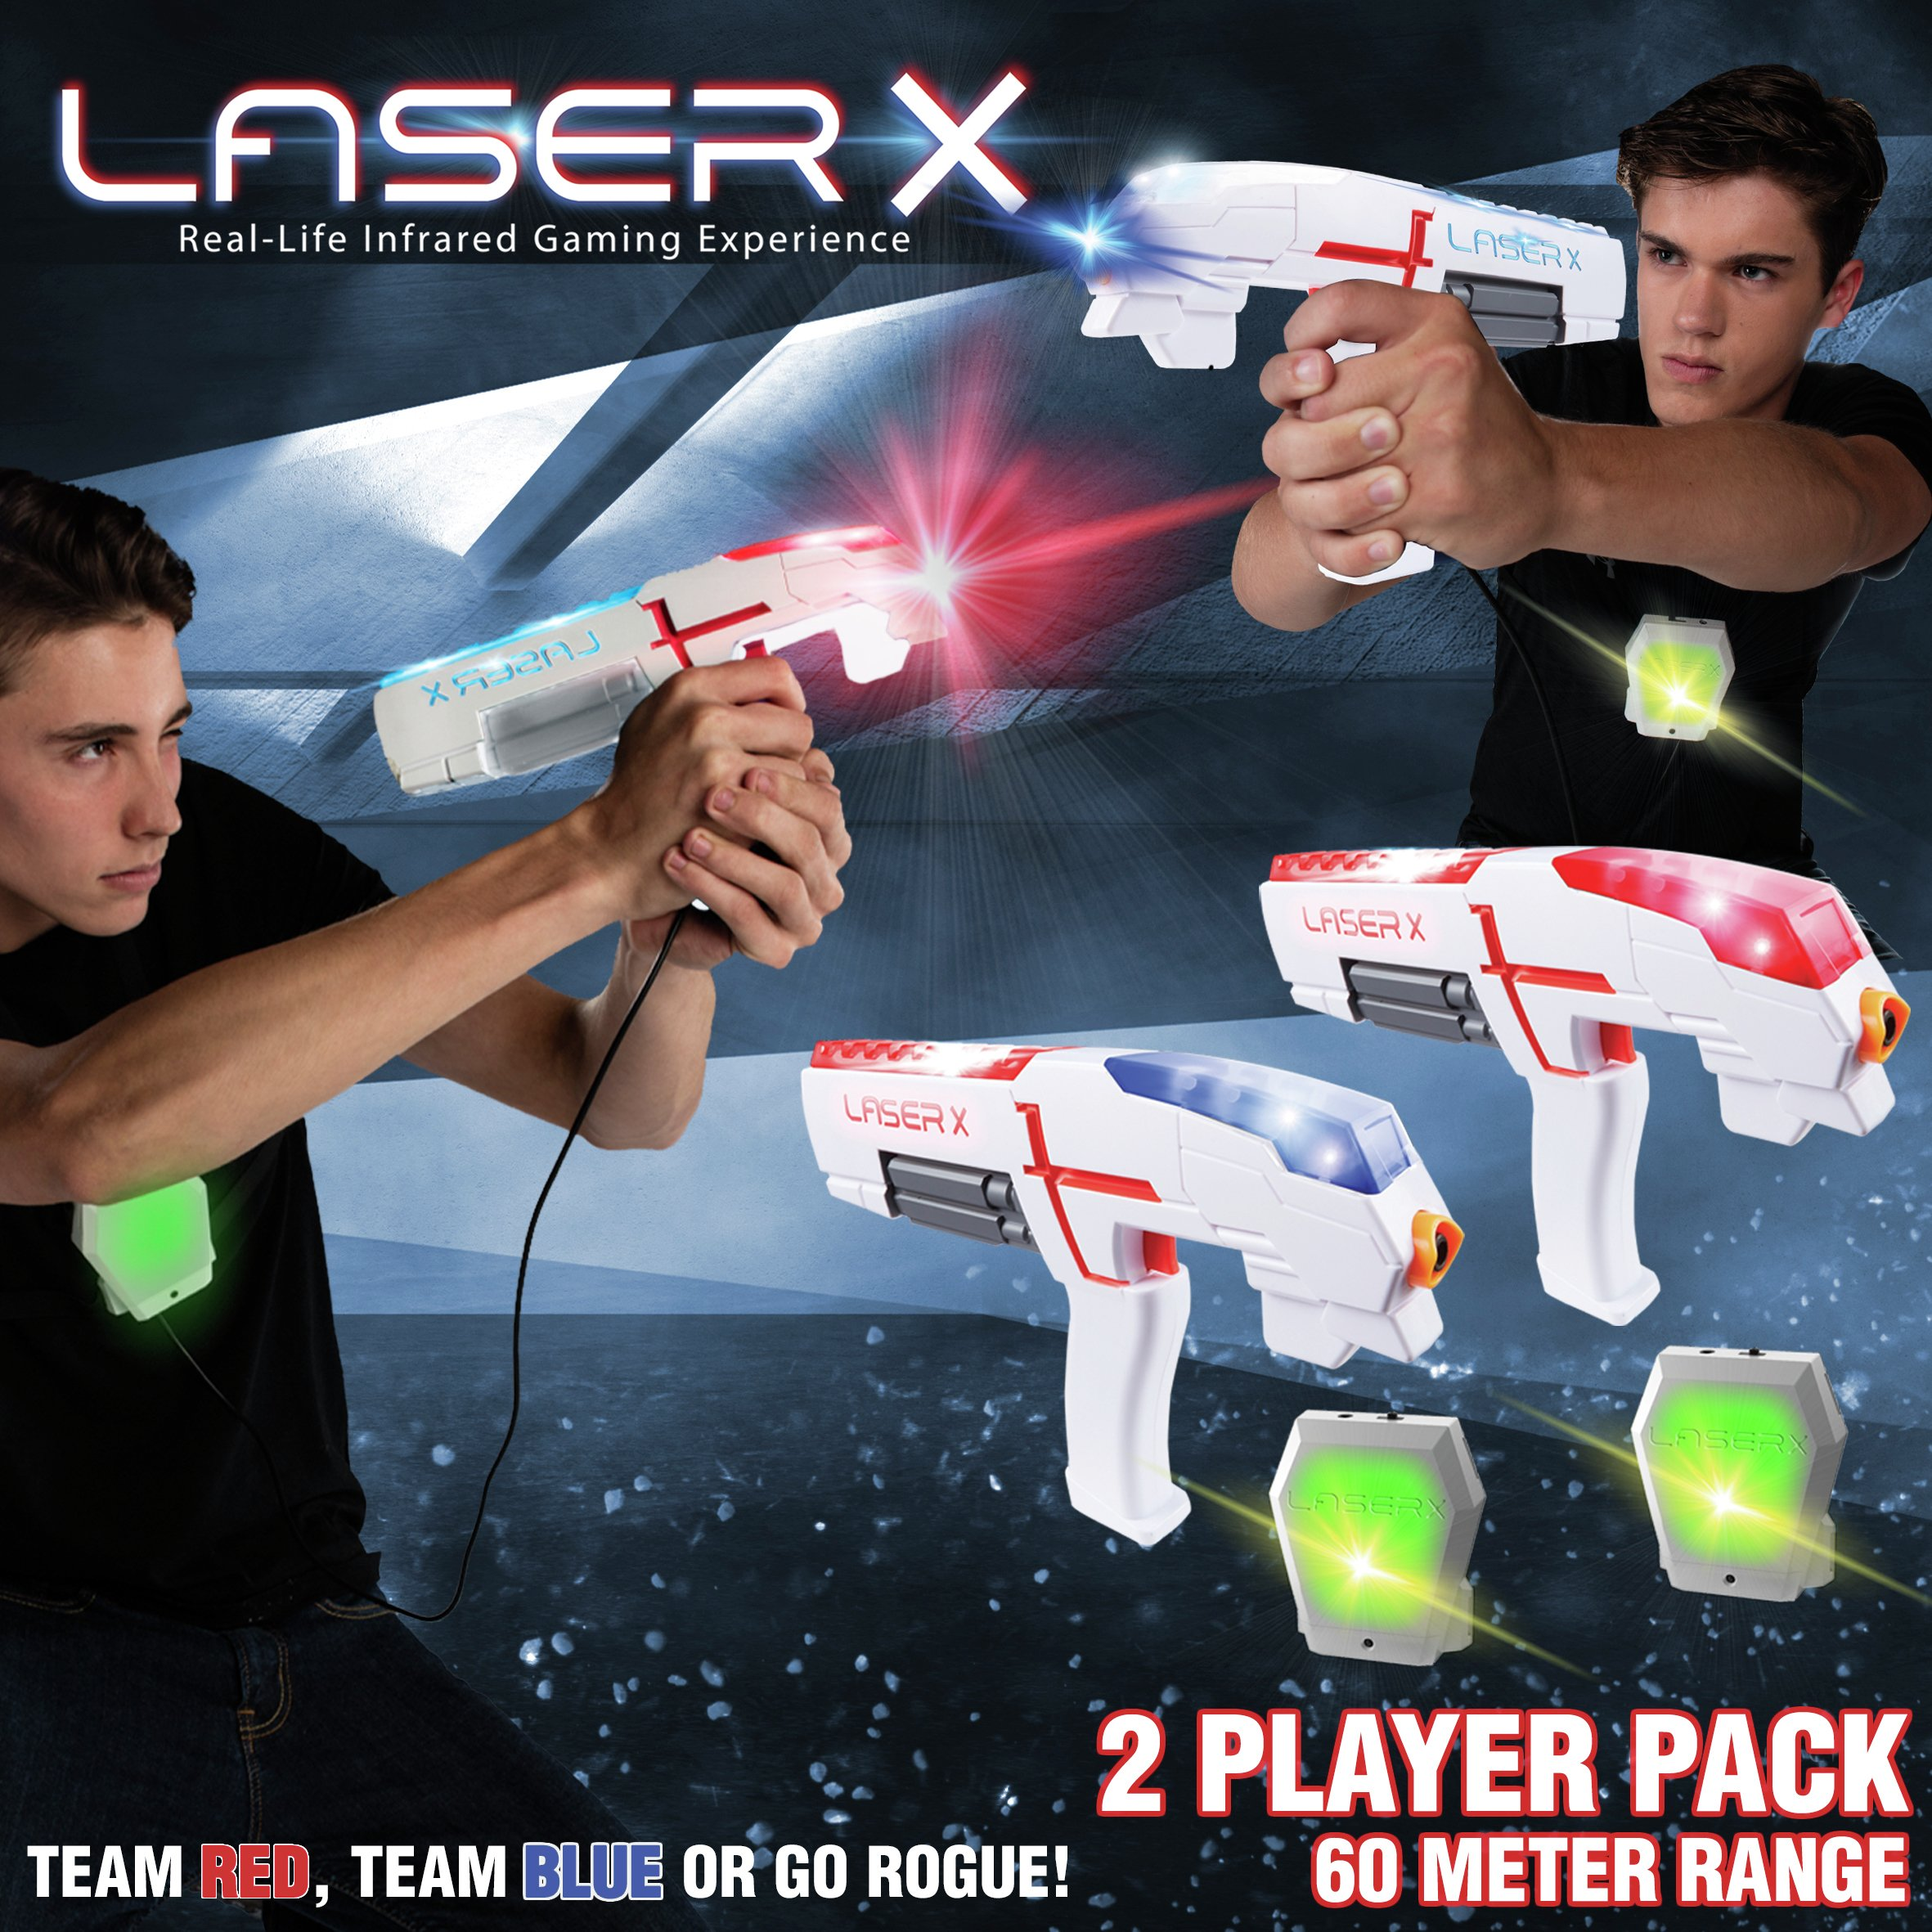 Laser X Laser Gaming Set - 2 Player Pack